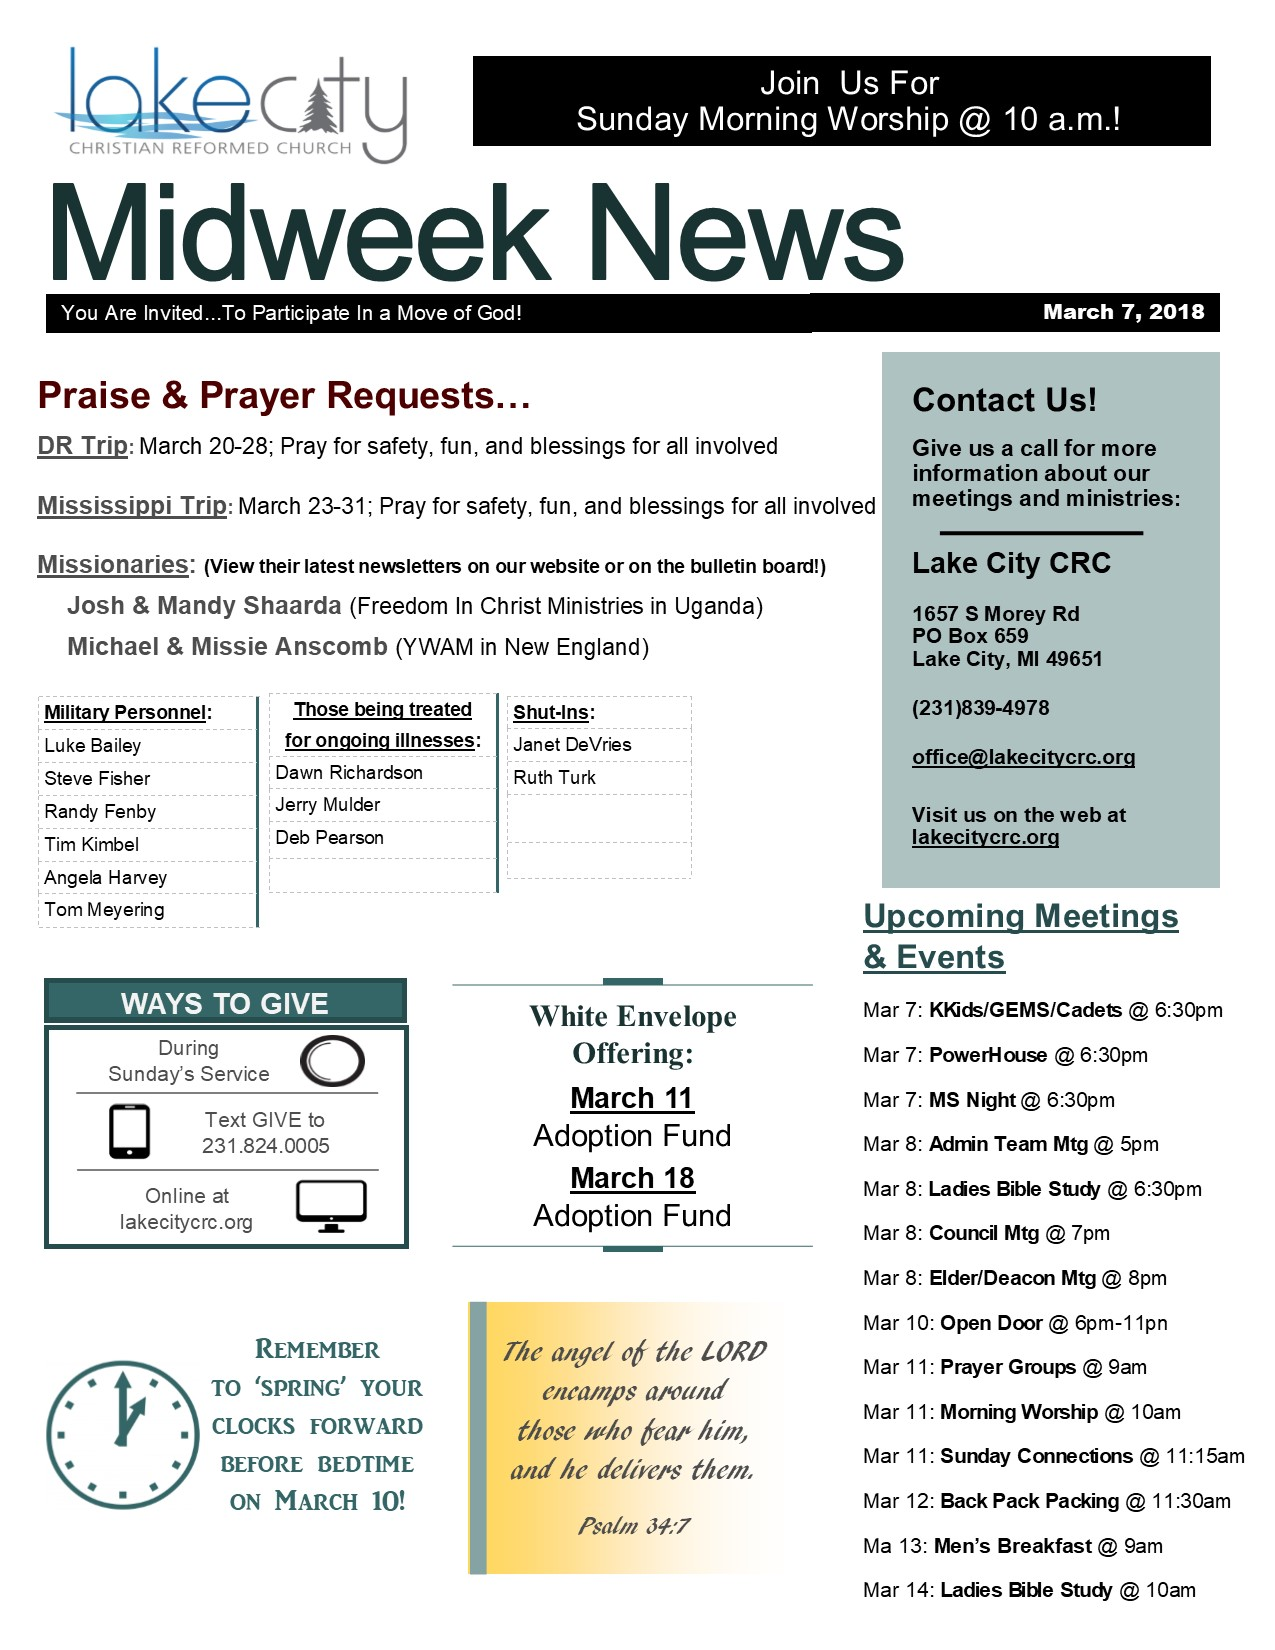 March 7, 2018 Midweek News